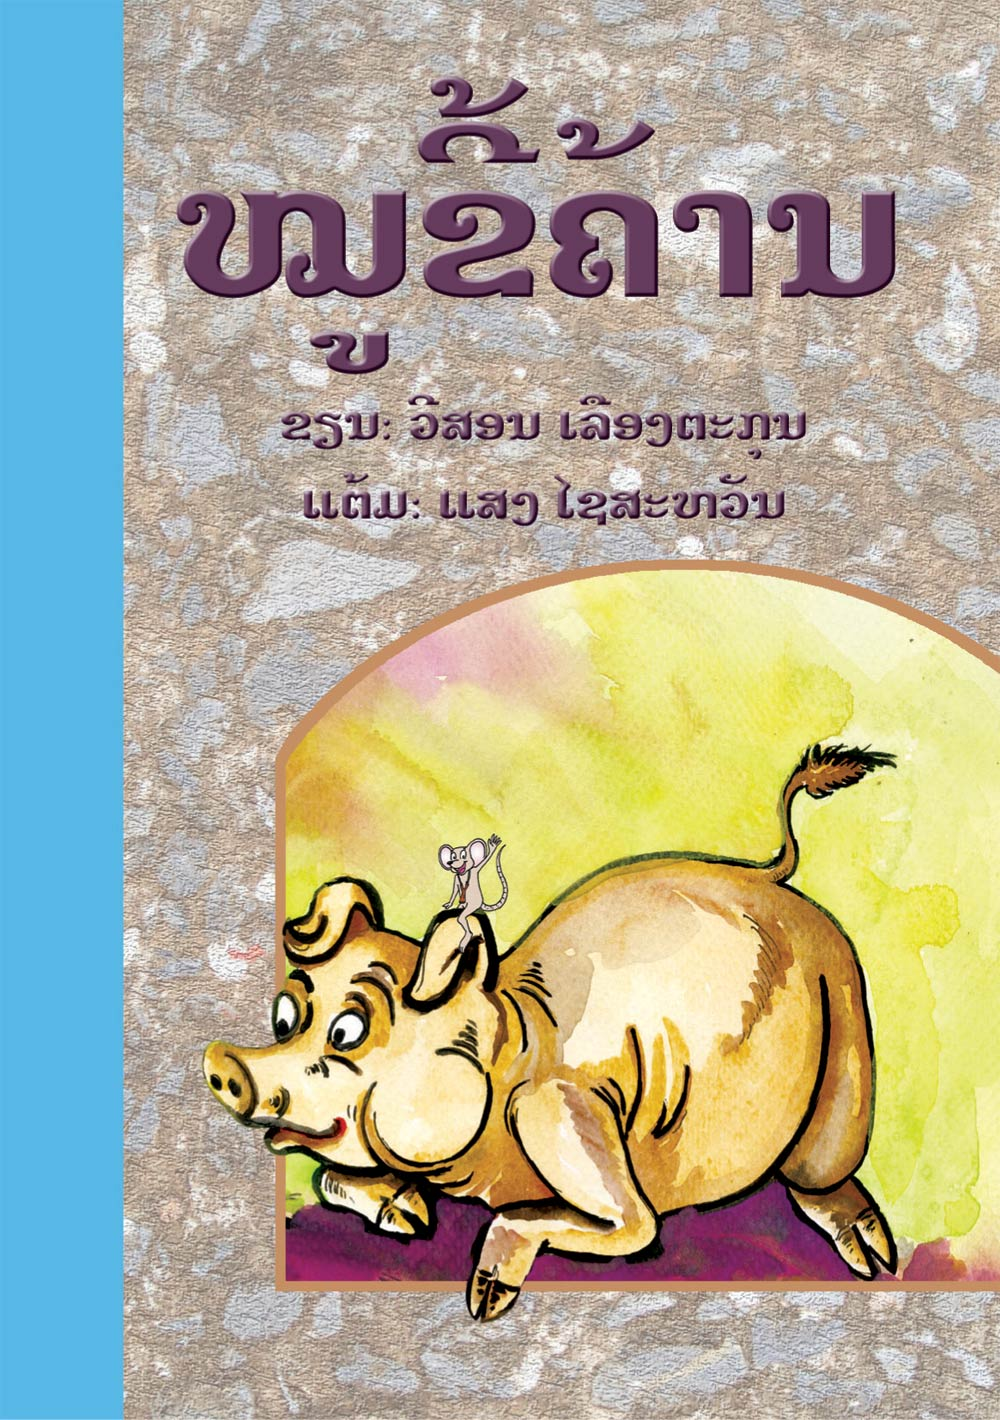 Lazy Pig large book cover, published in Lao language